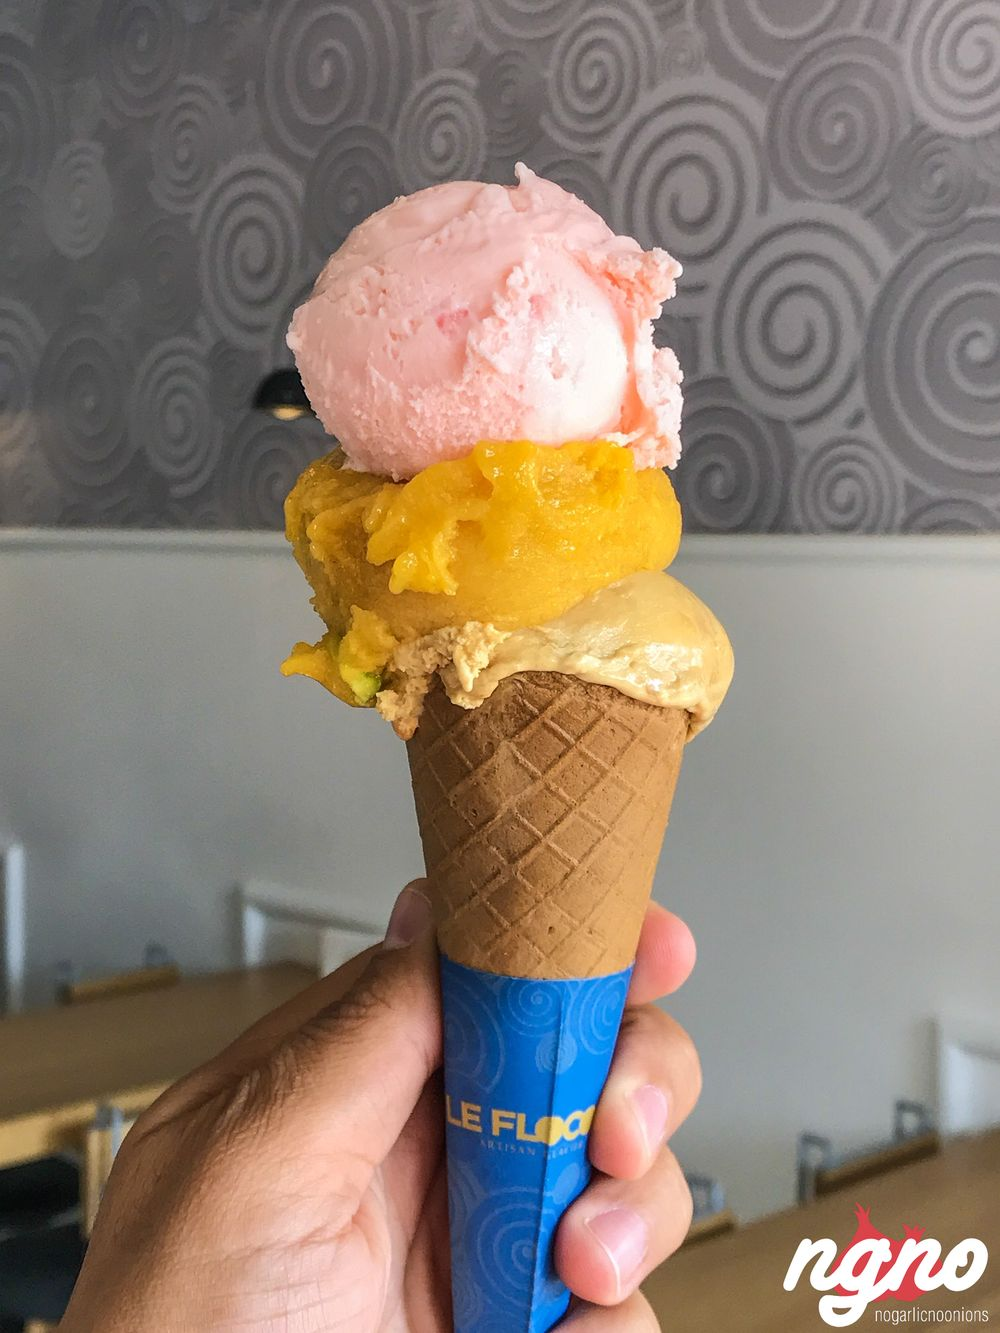 le-flocon-ice-cream-antelias22017-09-19-08-15-48